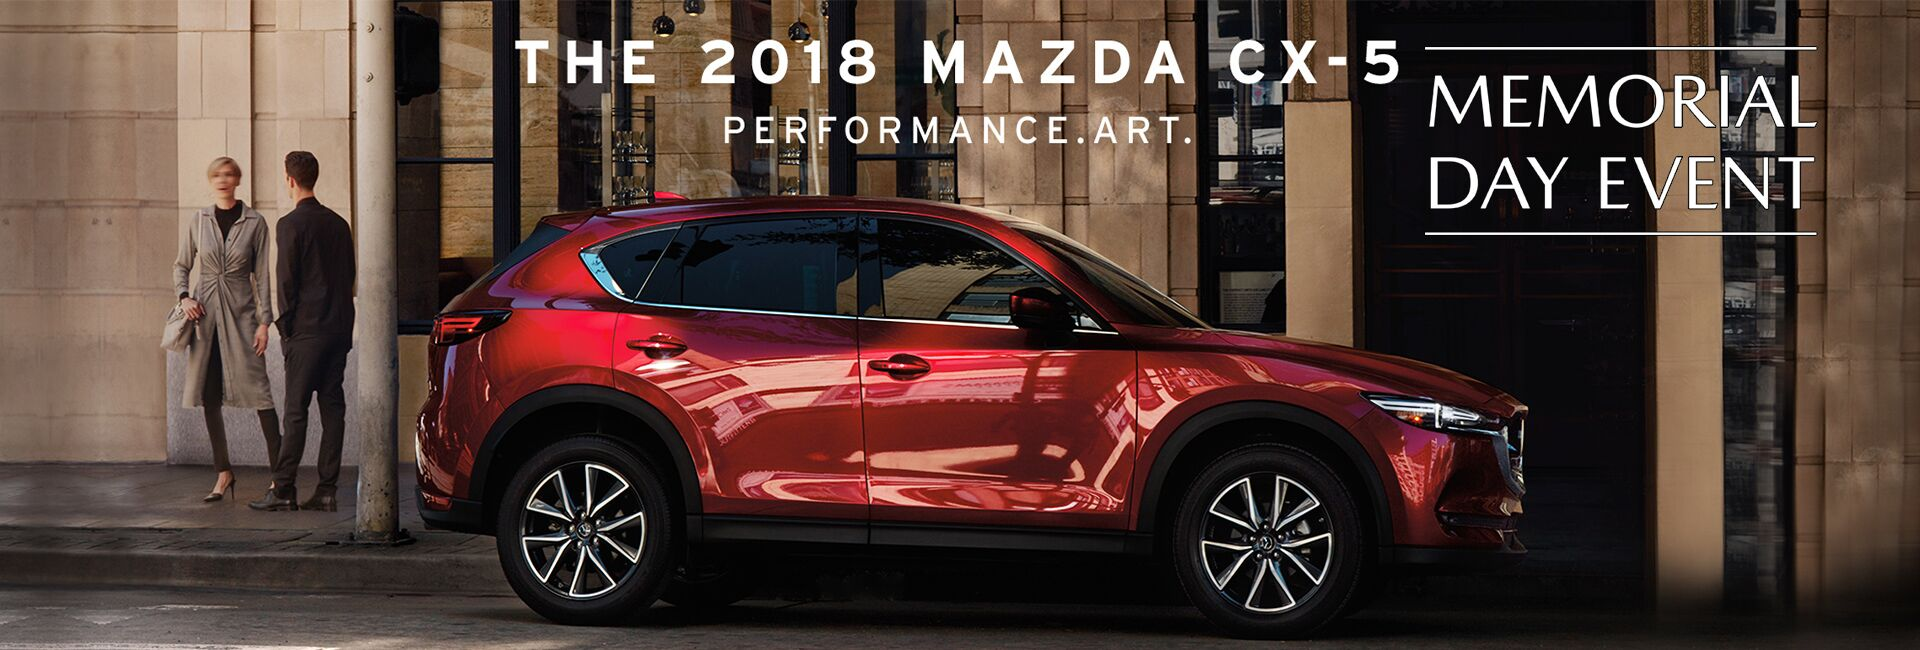 mazda orchard grand new park ny in buffalo towne touring cx